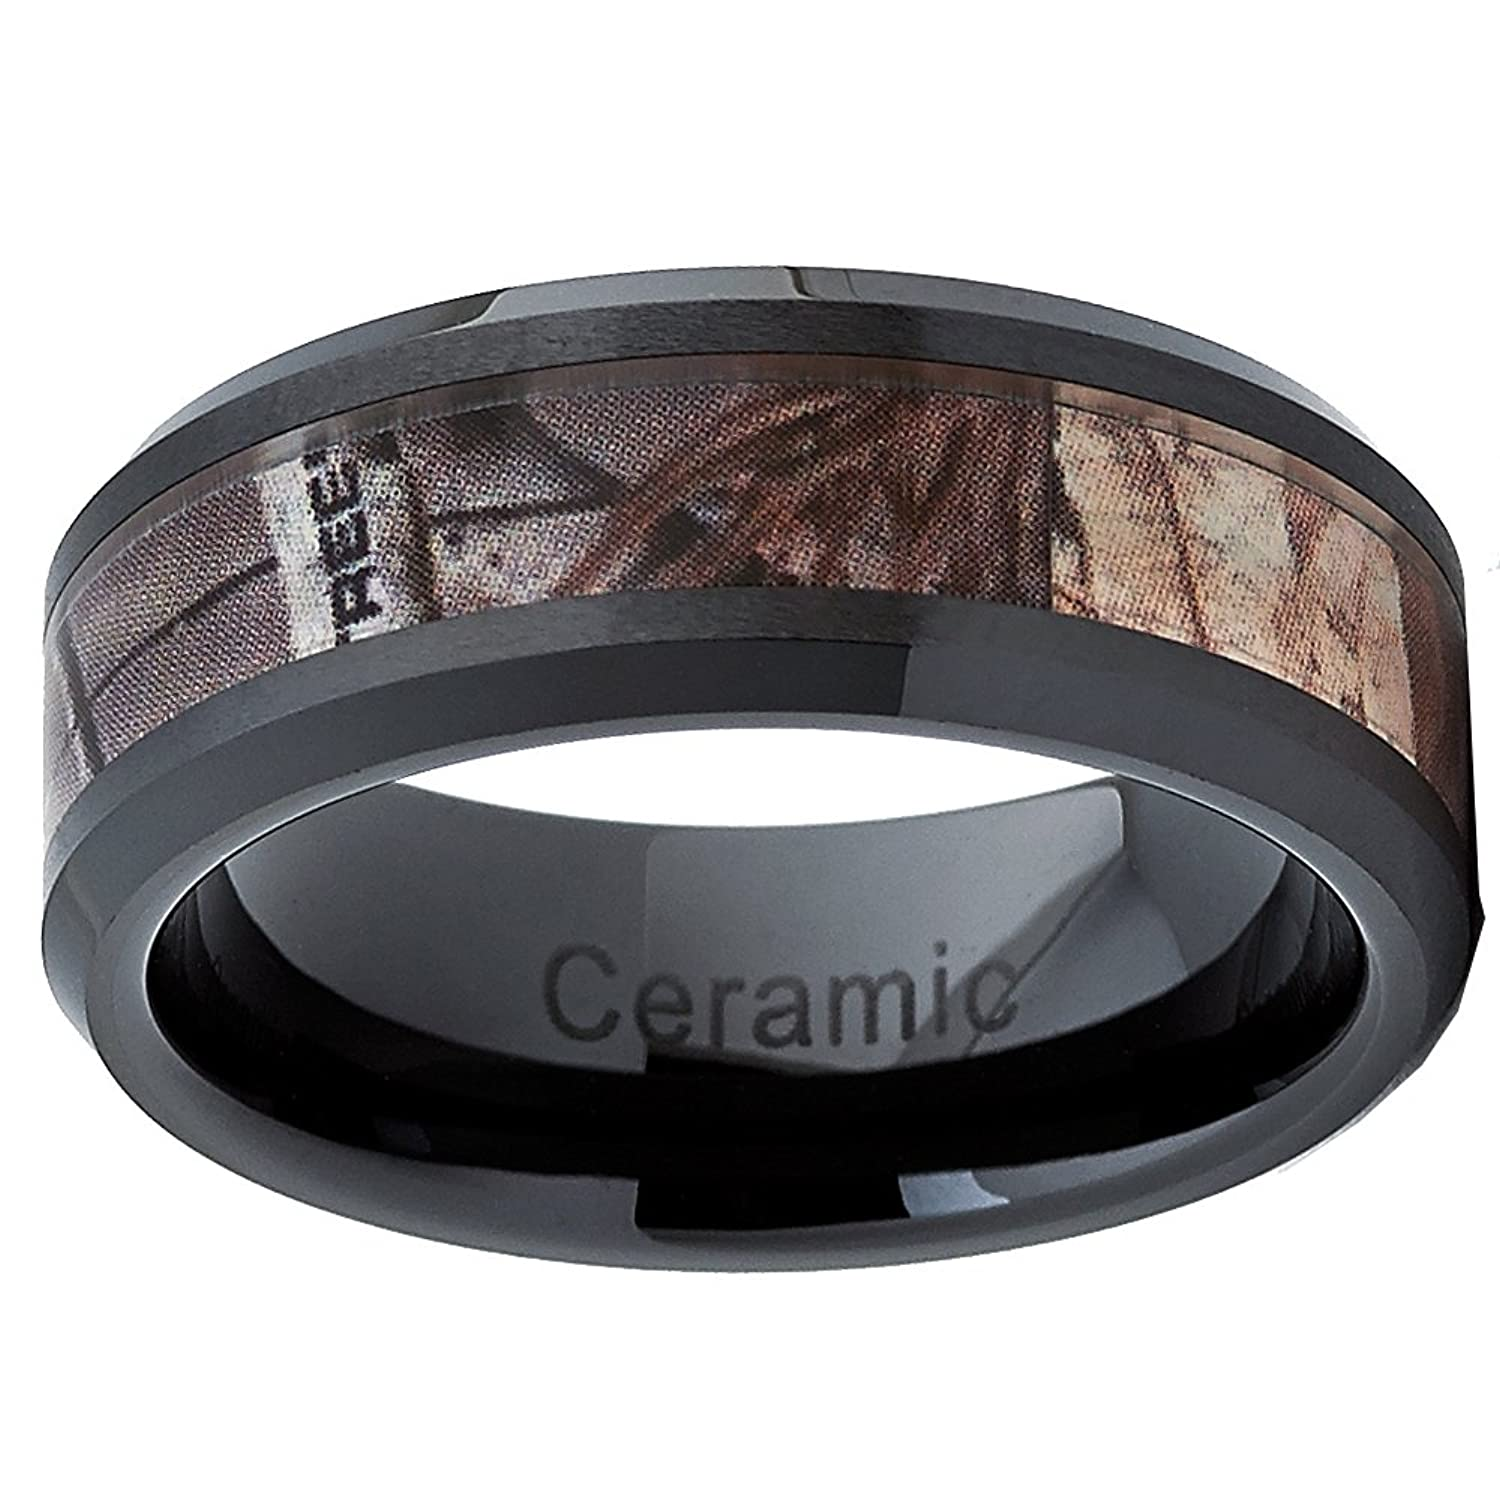 Black Ceramic Men s Hunting Camo Ring fort Fit Band 8mm Sizes